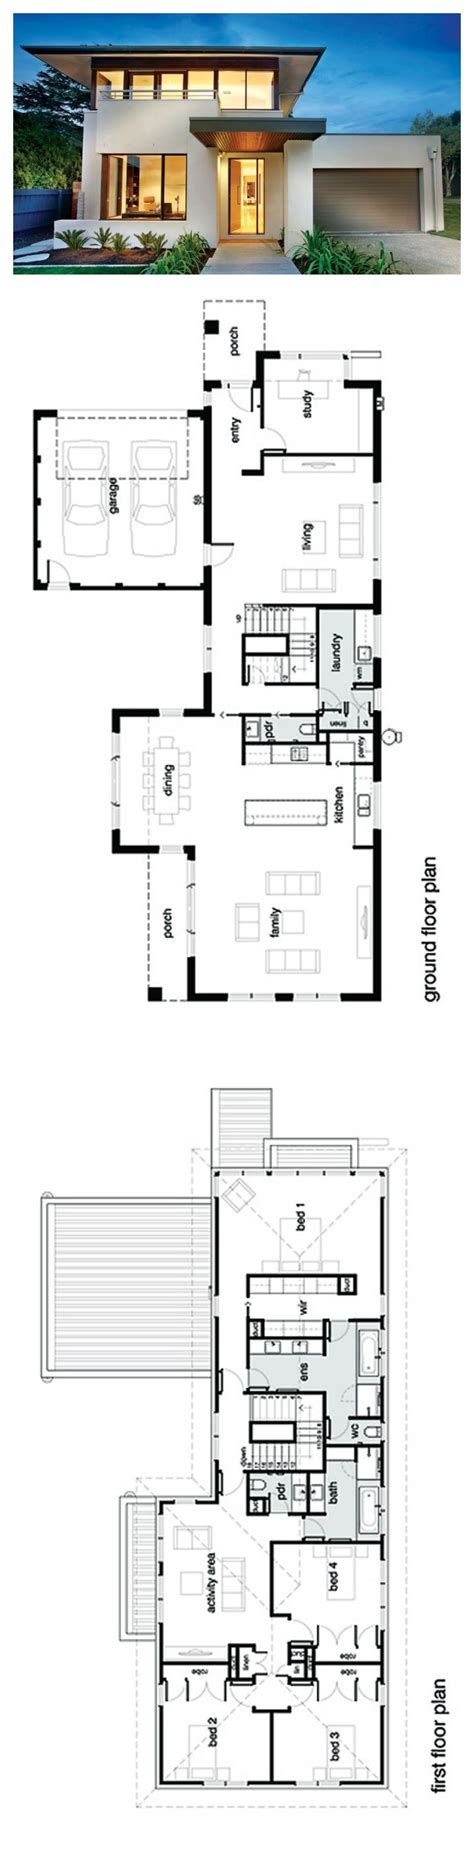 modern house floor plan the 25 best ideas about modern house plans on pinterest